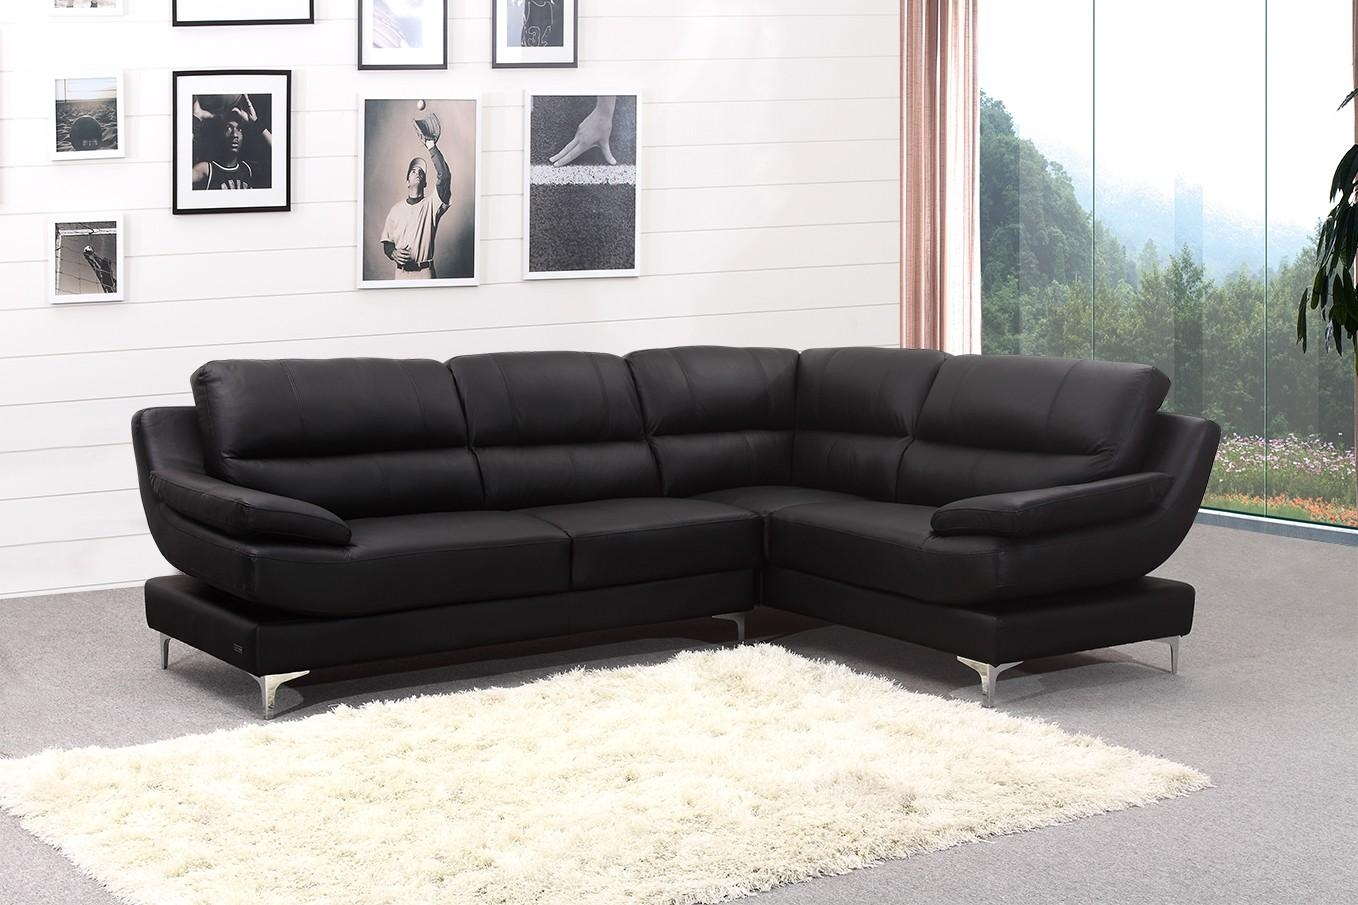 Brilliant Leather Corner Sofa Leather Corner Sofas Groups In A With Black Leather Corner Sofas (Image 2 of 20)